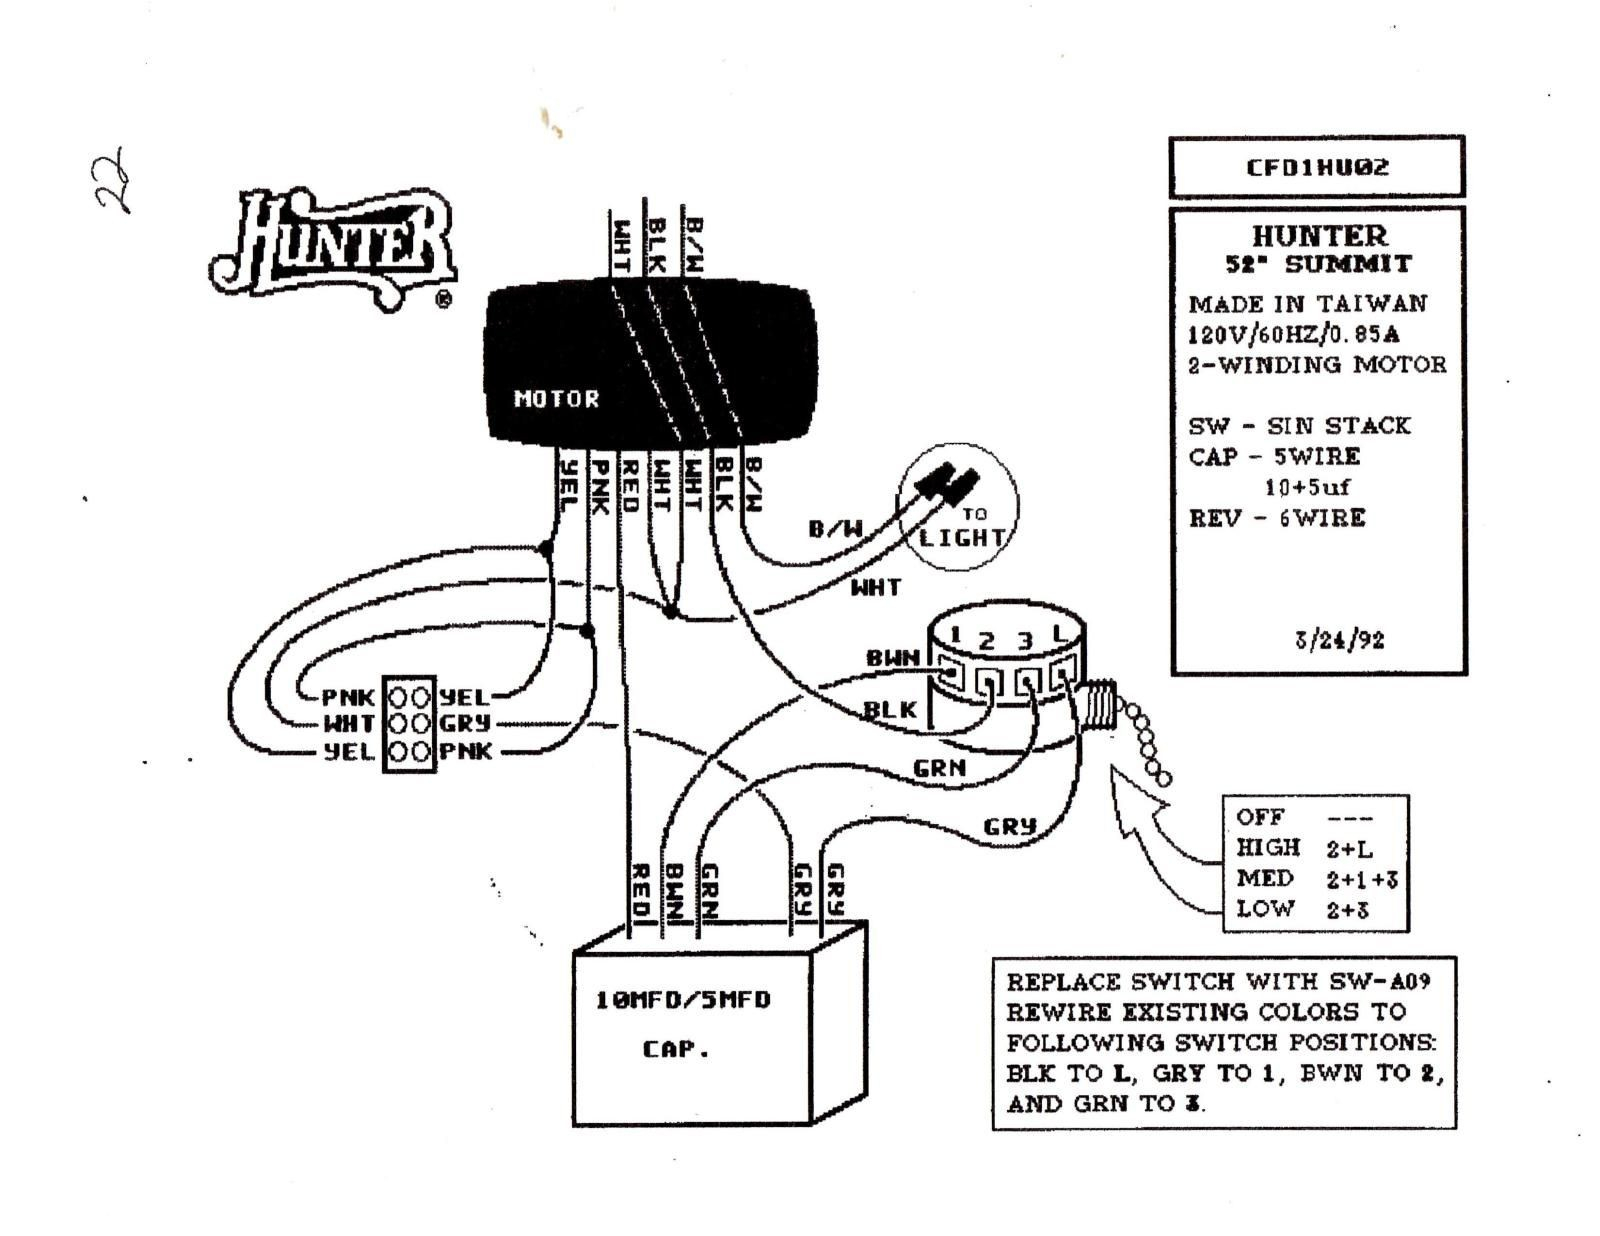 hunter ceiling fan wiring diagram Download-Wiring Diagram for A Ceiling Fan with Remote Control Best Hunter Ceiling Fan with Remote Wiring 9-f